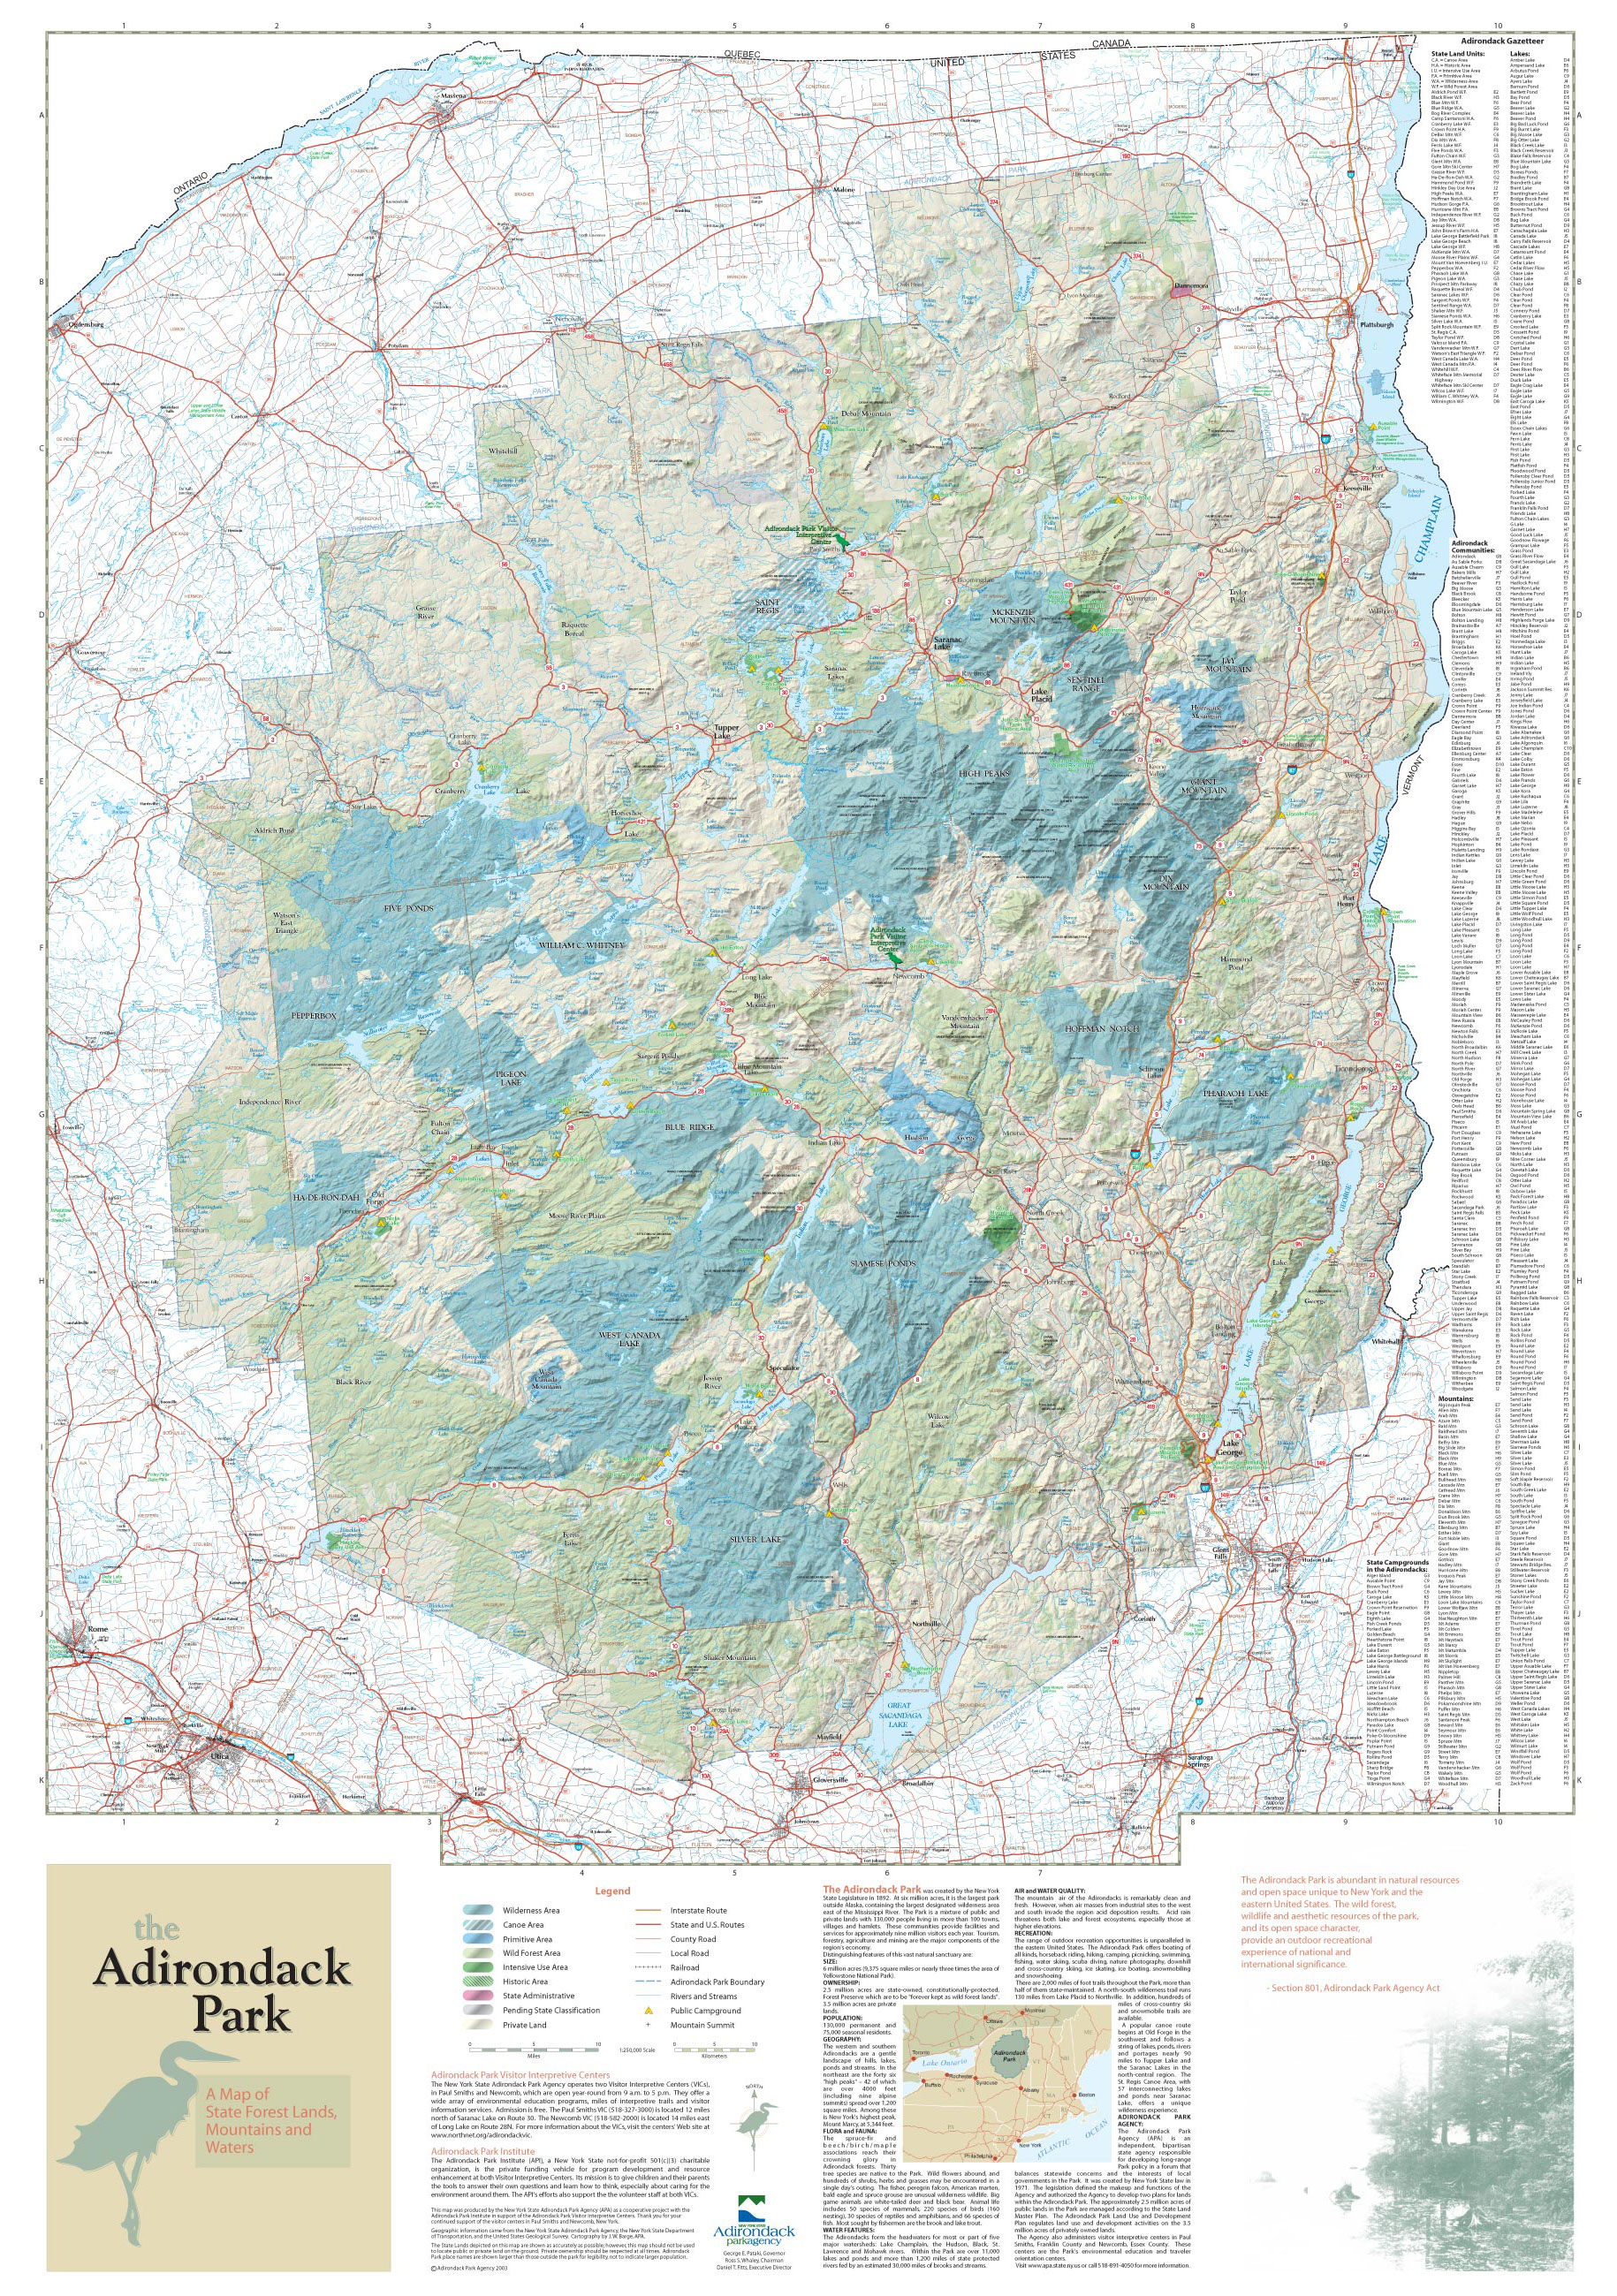 Adirondack Park Agency Maps and GIS on